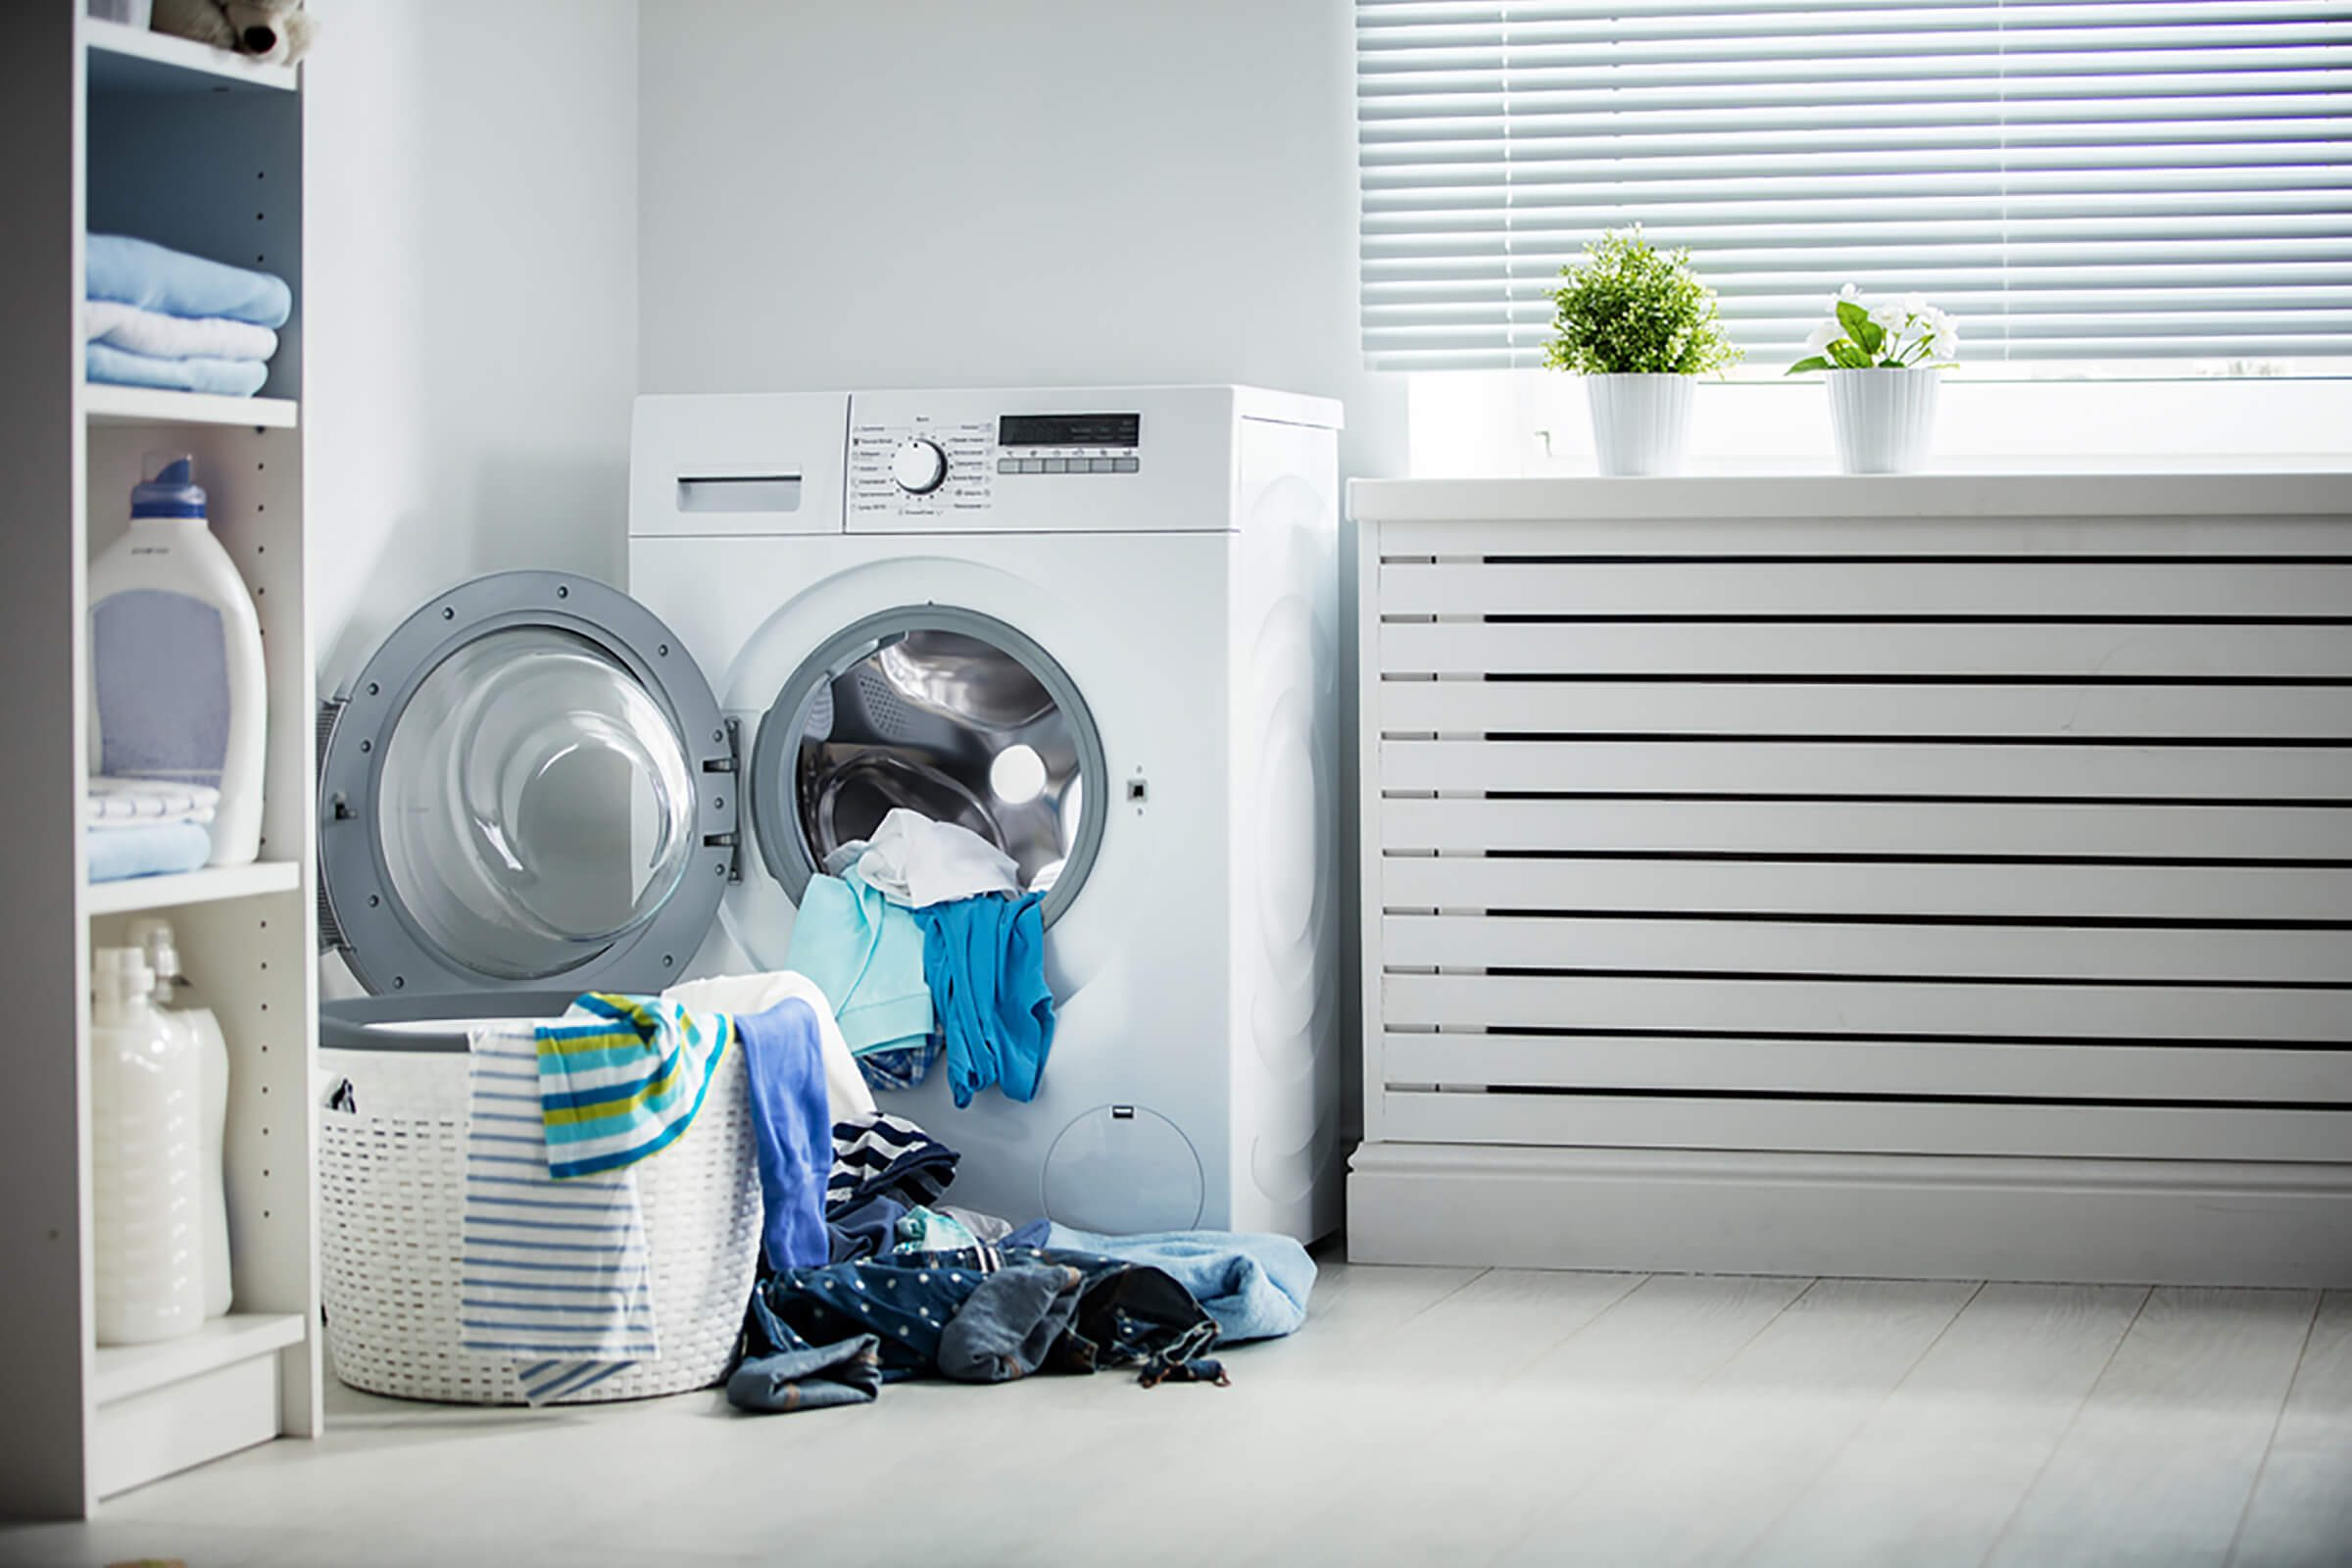 How To Do Laundry Wash Clothes And 10 Mistakes Avoid